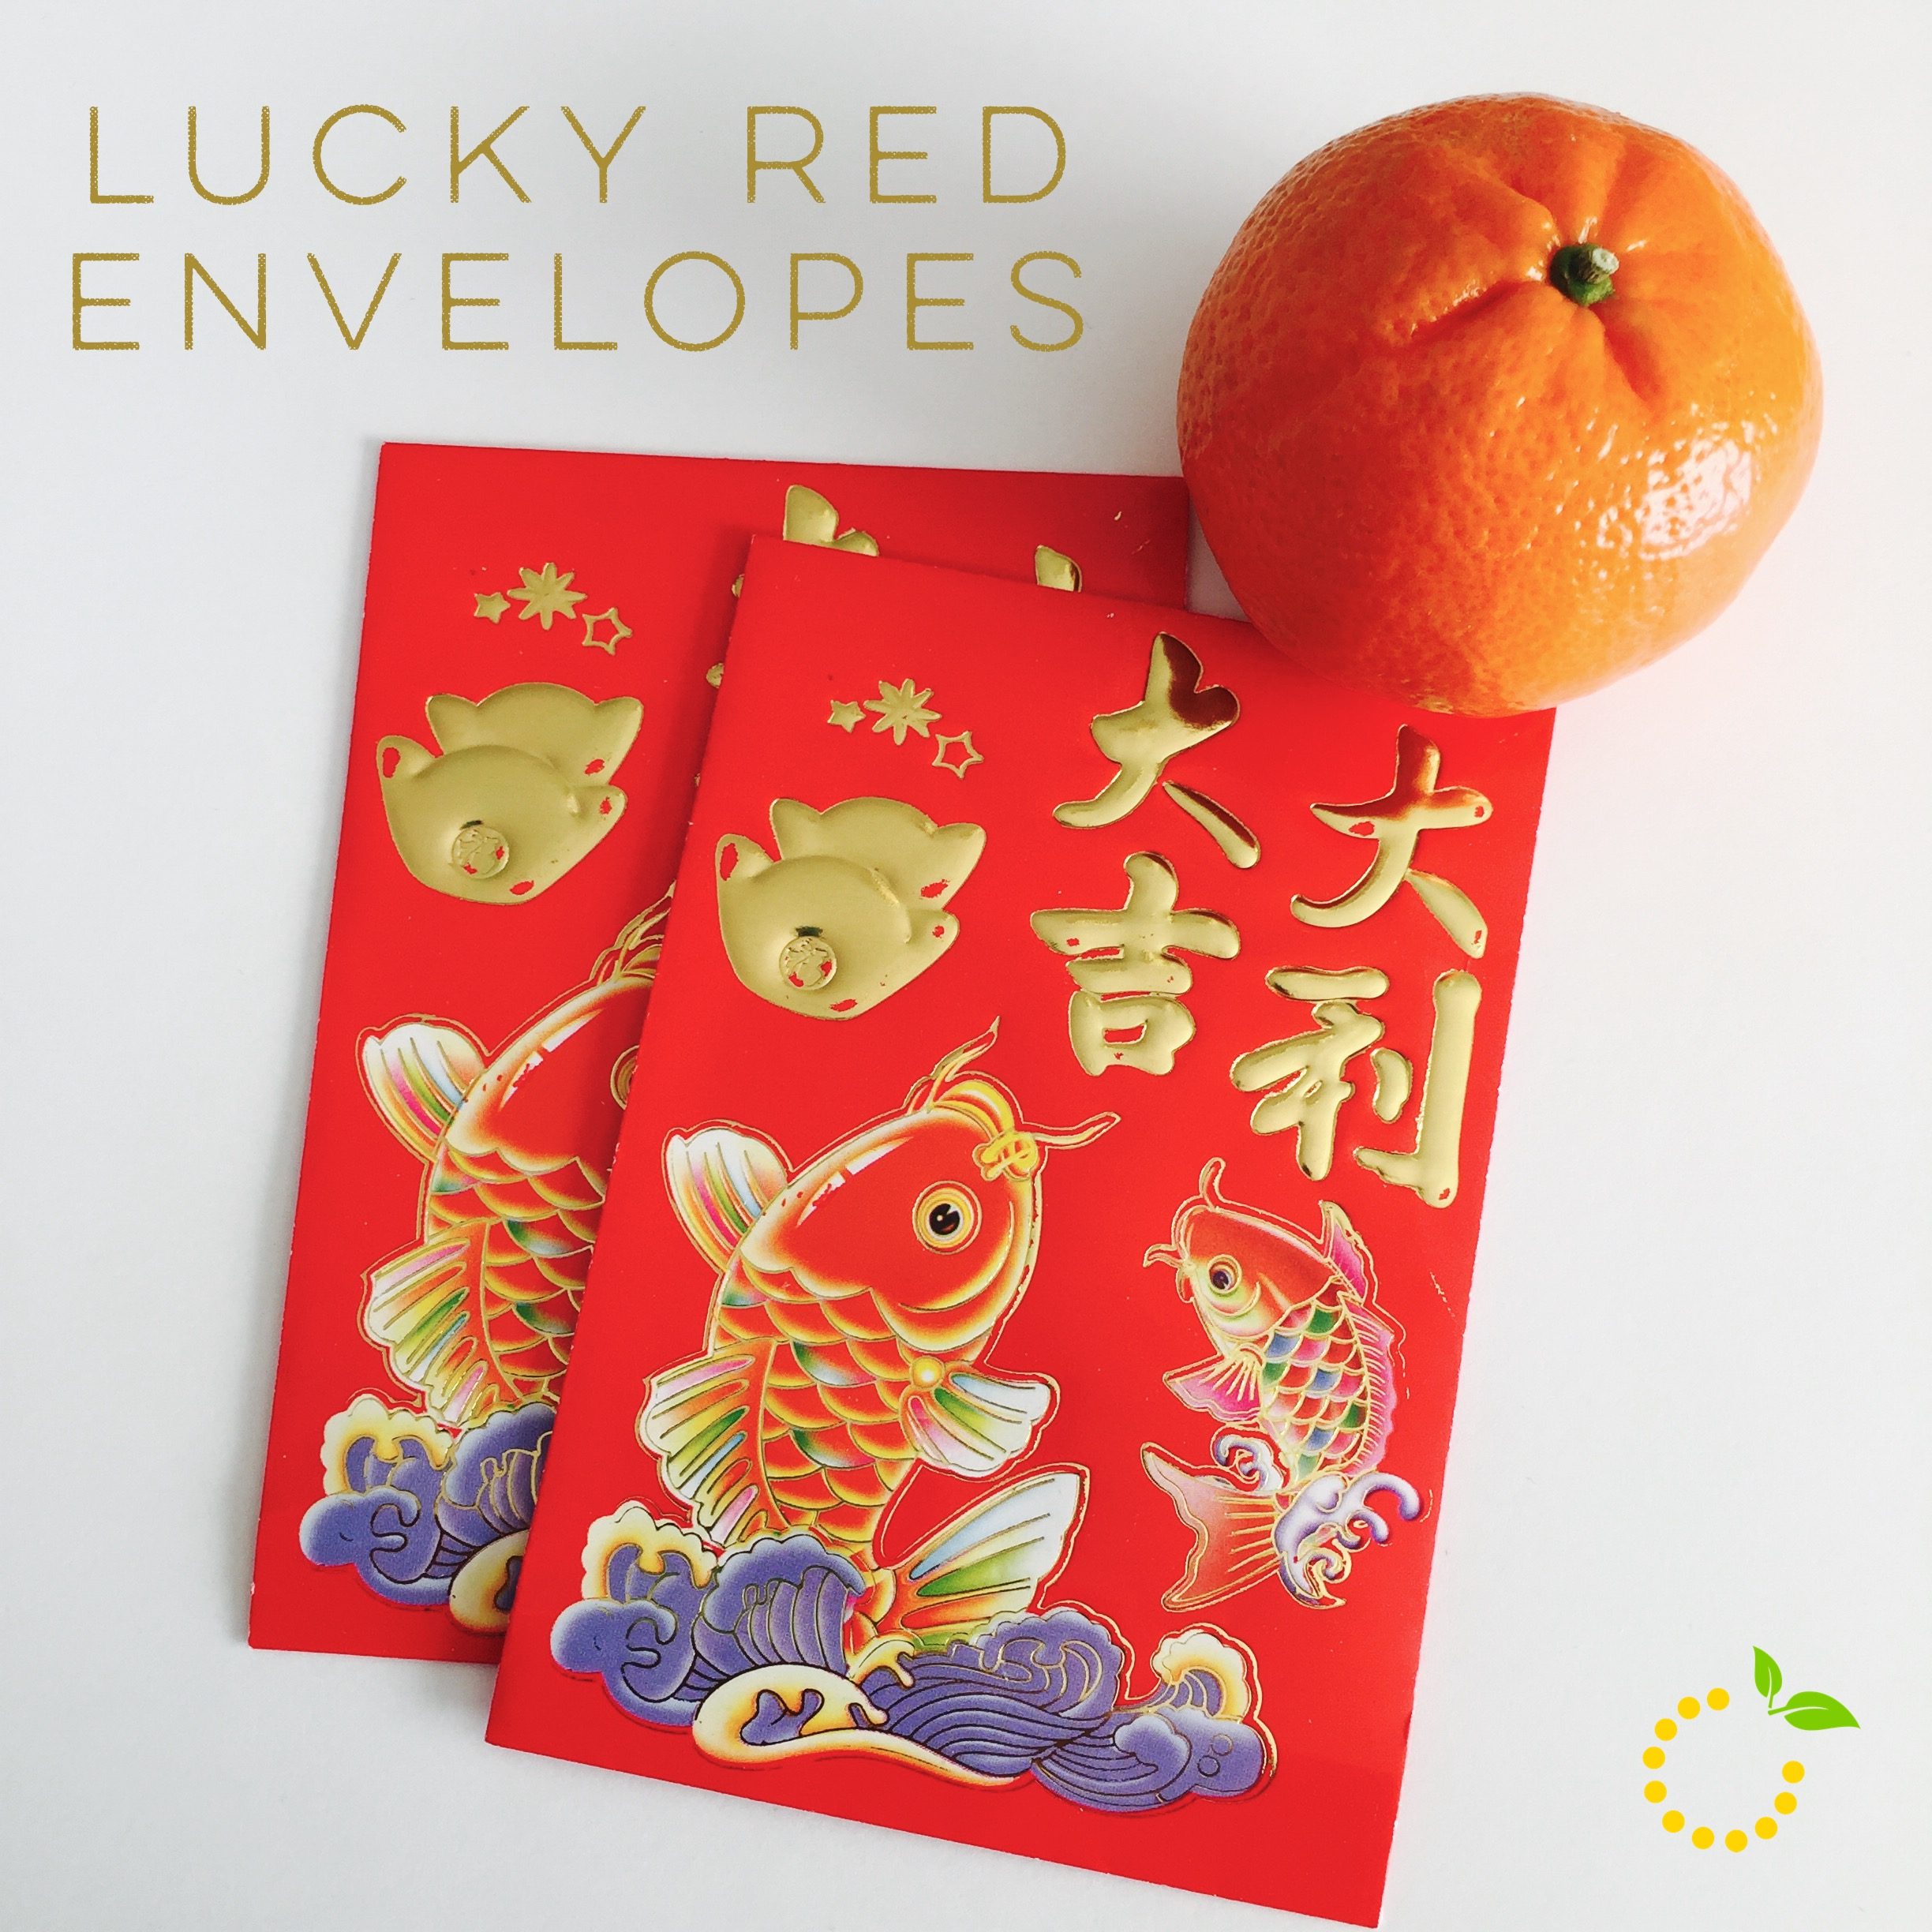 Red Envelopes sweetlemonmade.com